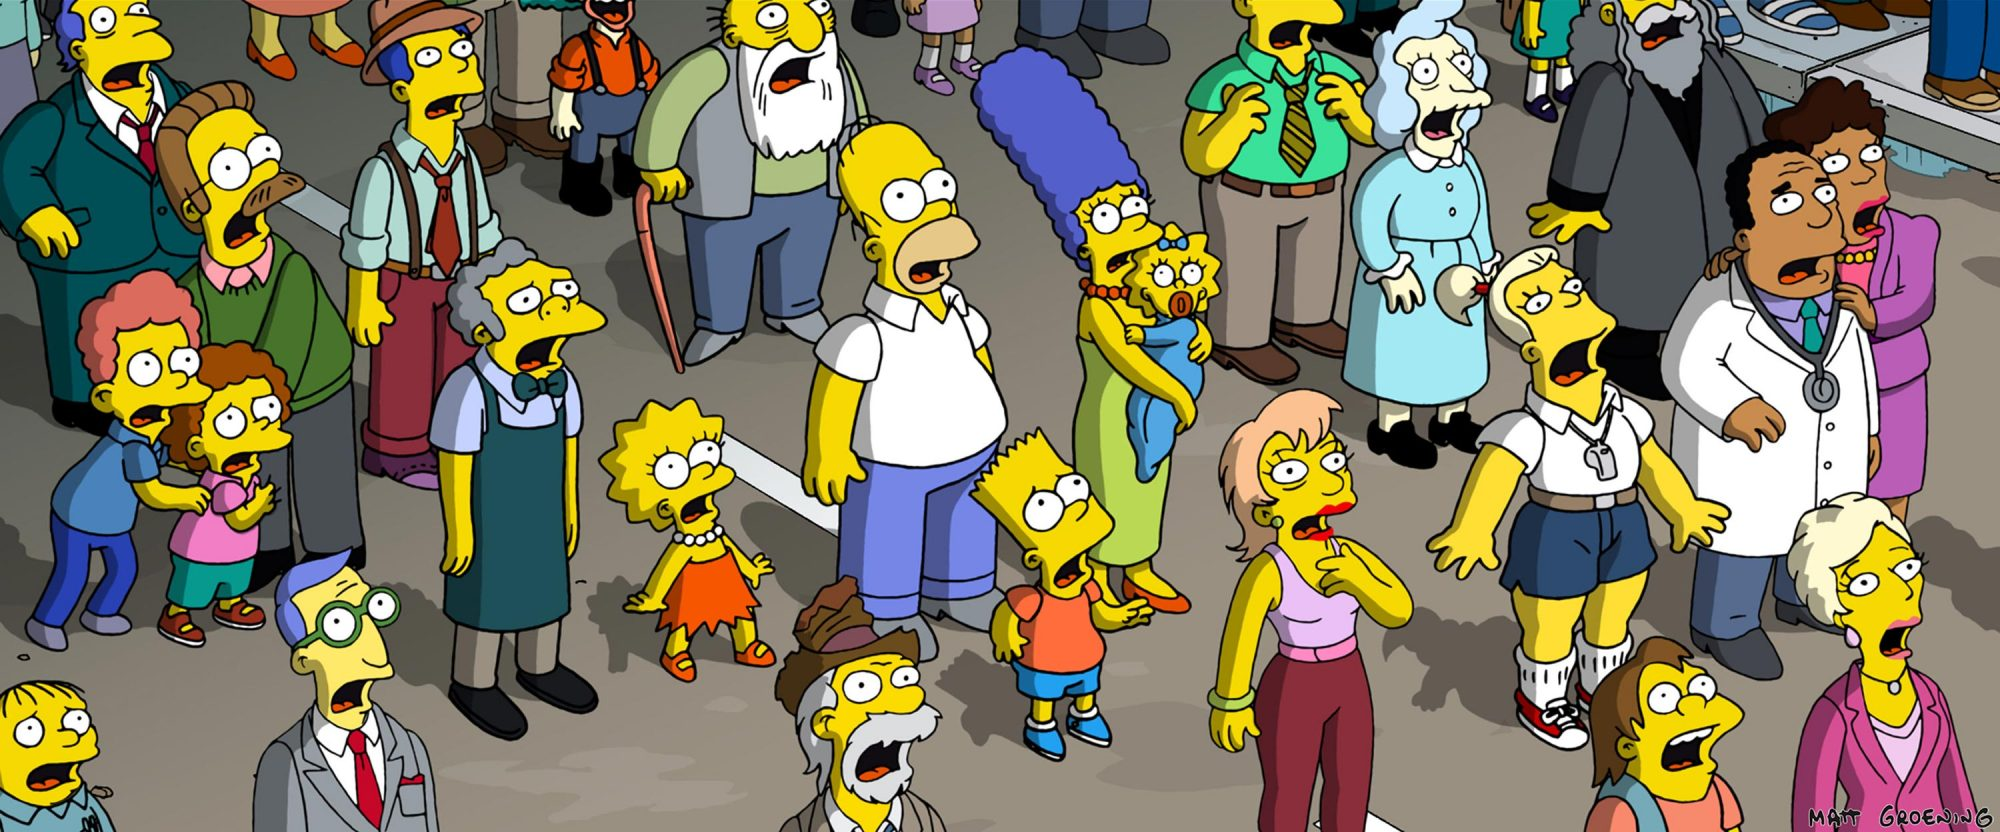 THE SIMPSONS MOVIE, Ralph Wiggum (lower left), left, second row: Rod Flanders, Todd Flanders, Ned Fl